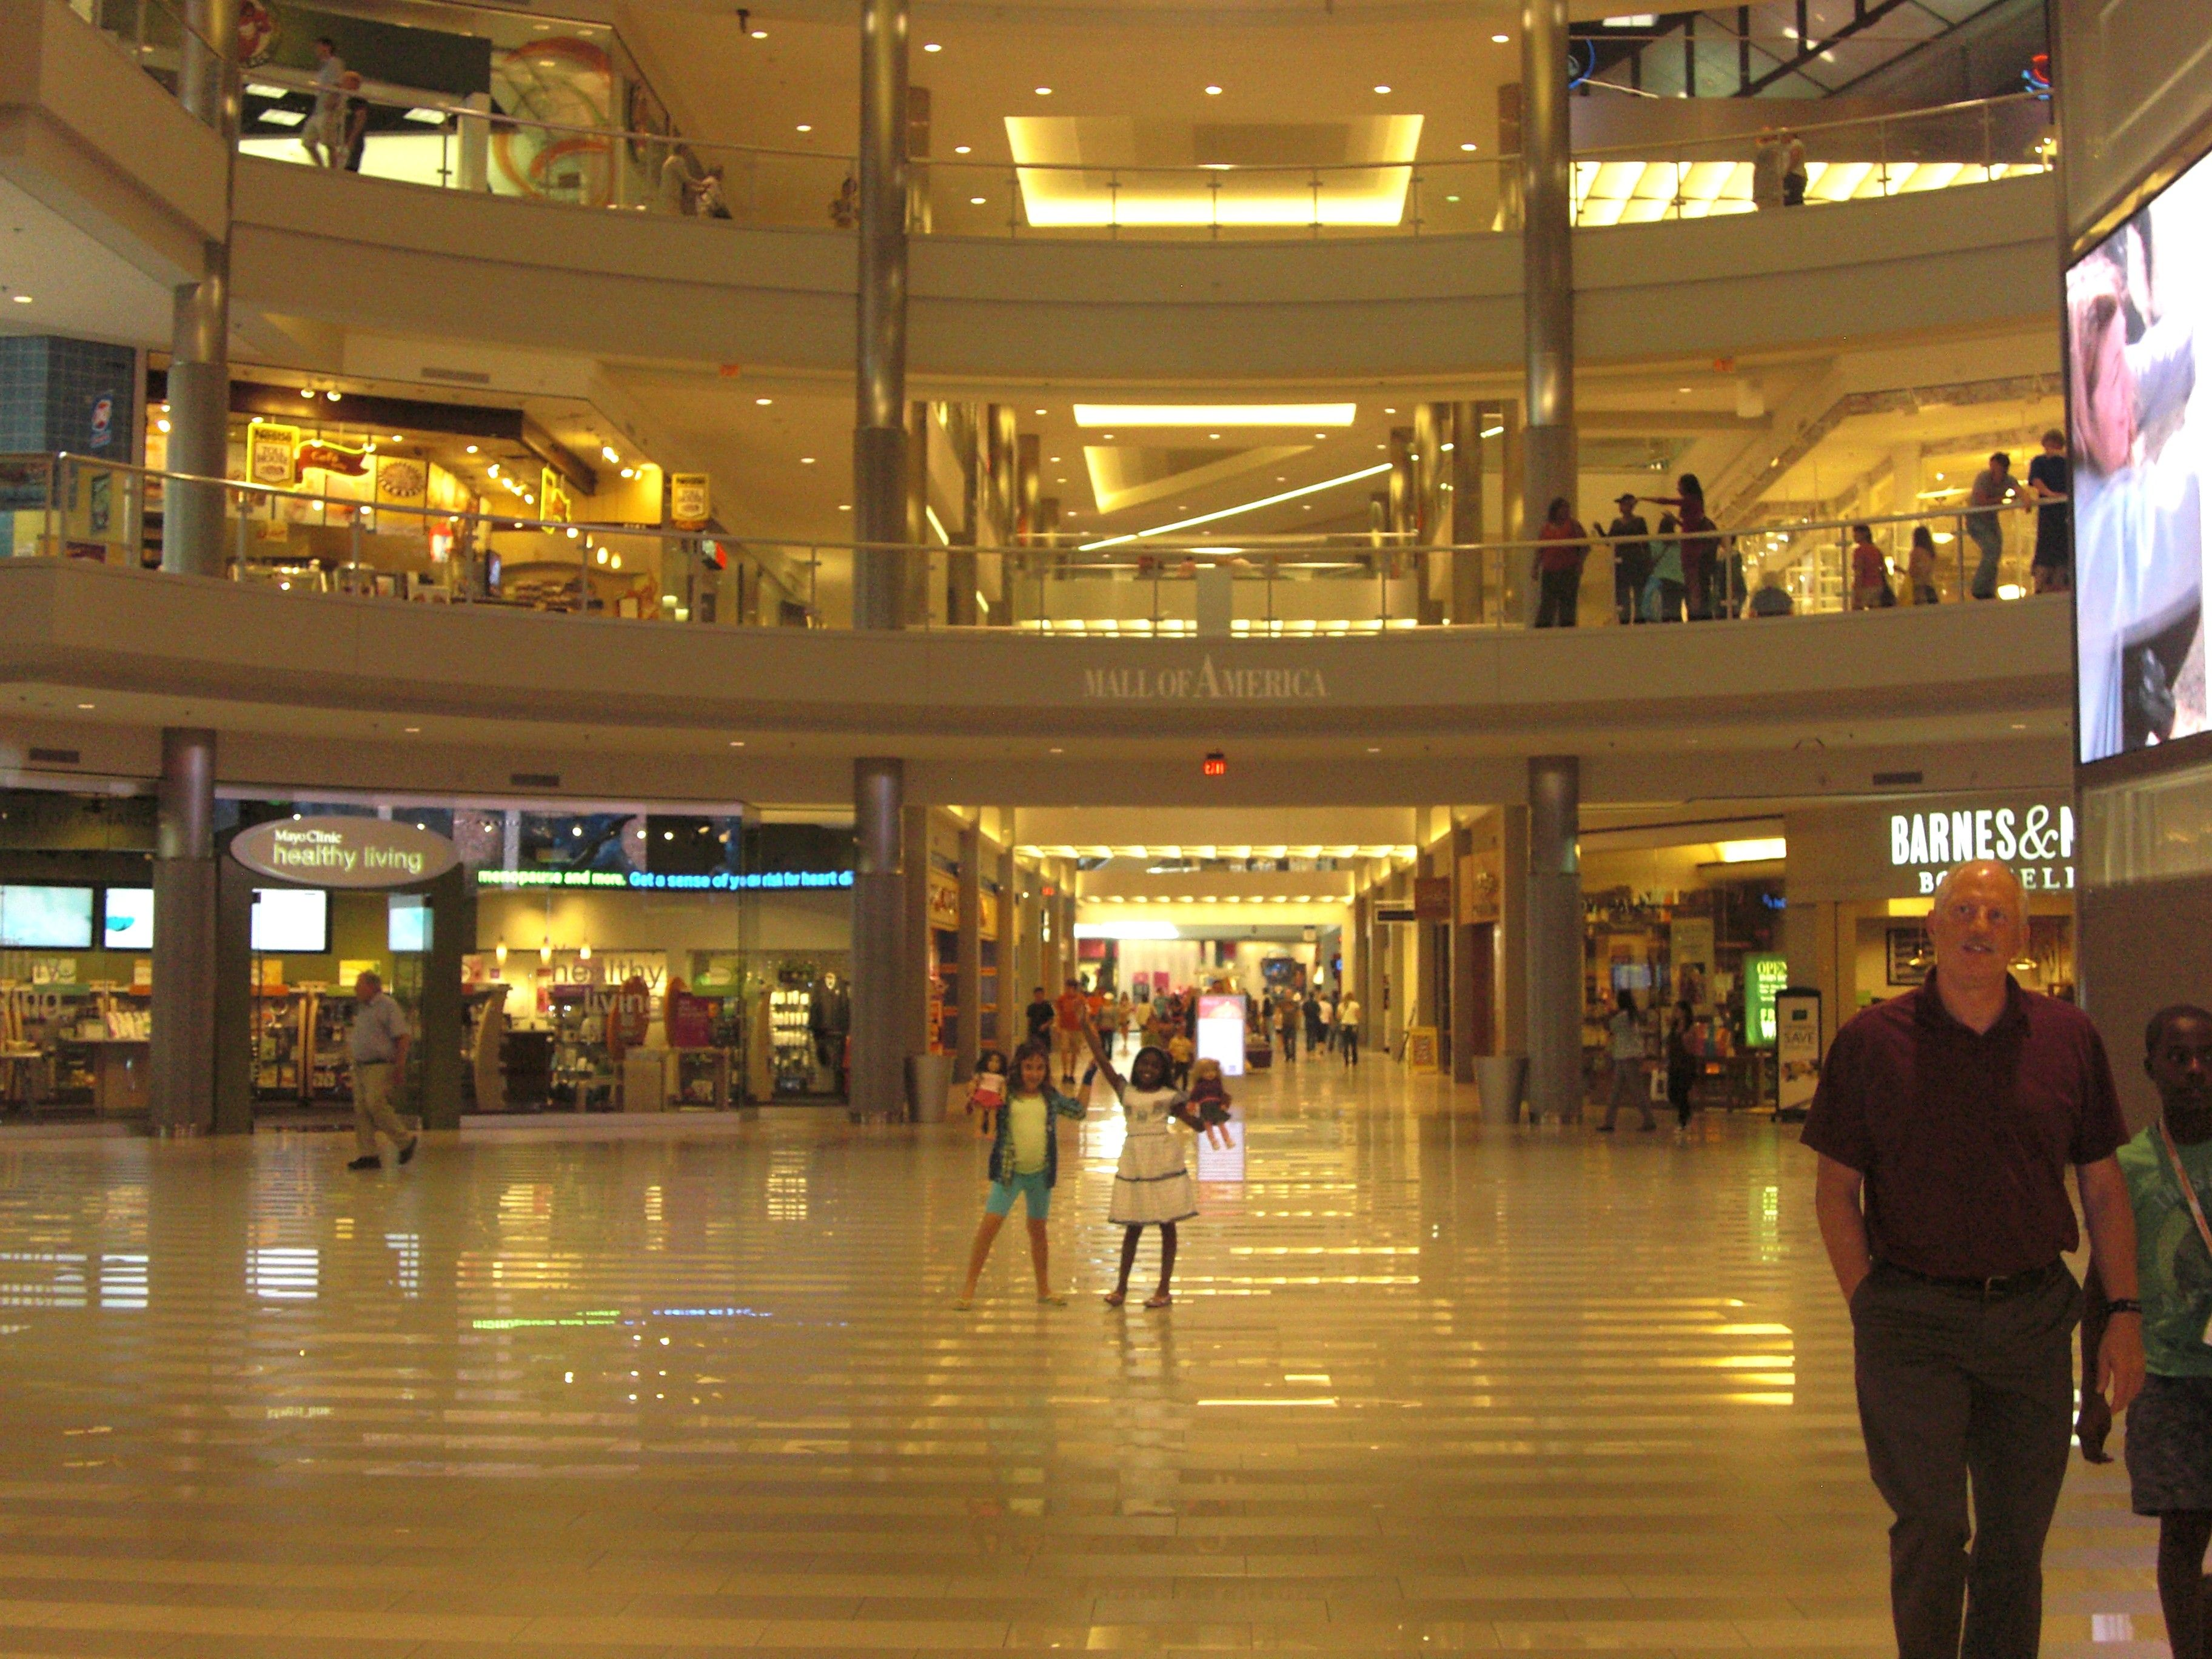 Mall of america largest shopping mall in the usa located